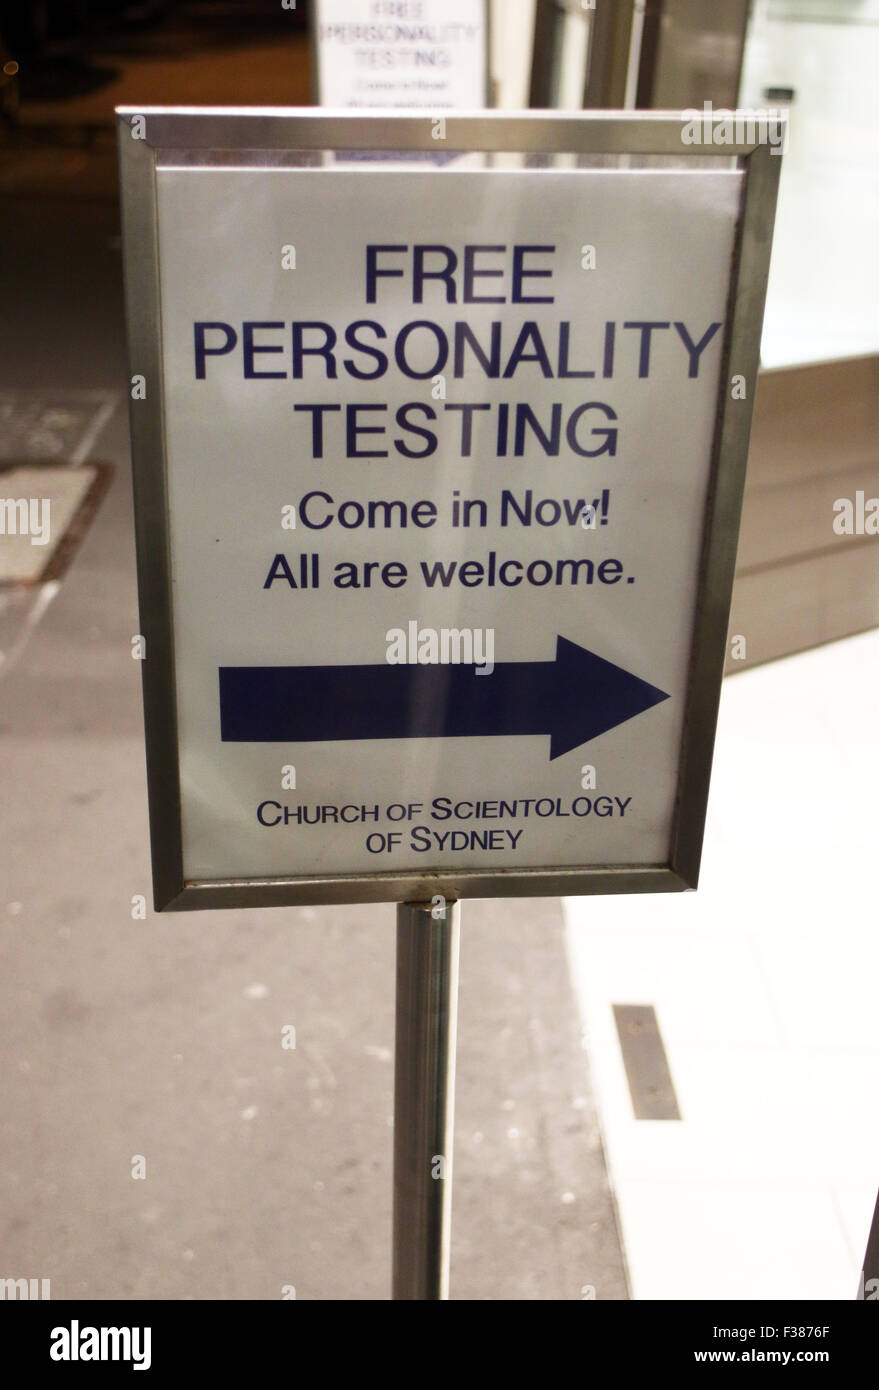 Scientology Free Personality Test - Stock Image